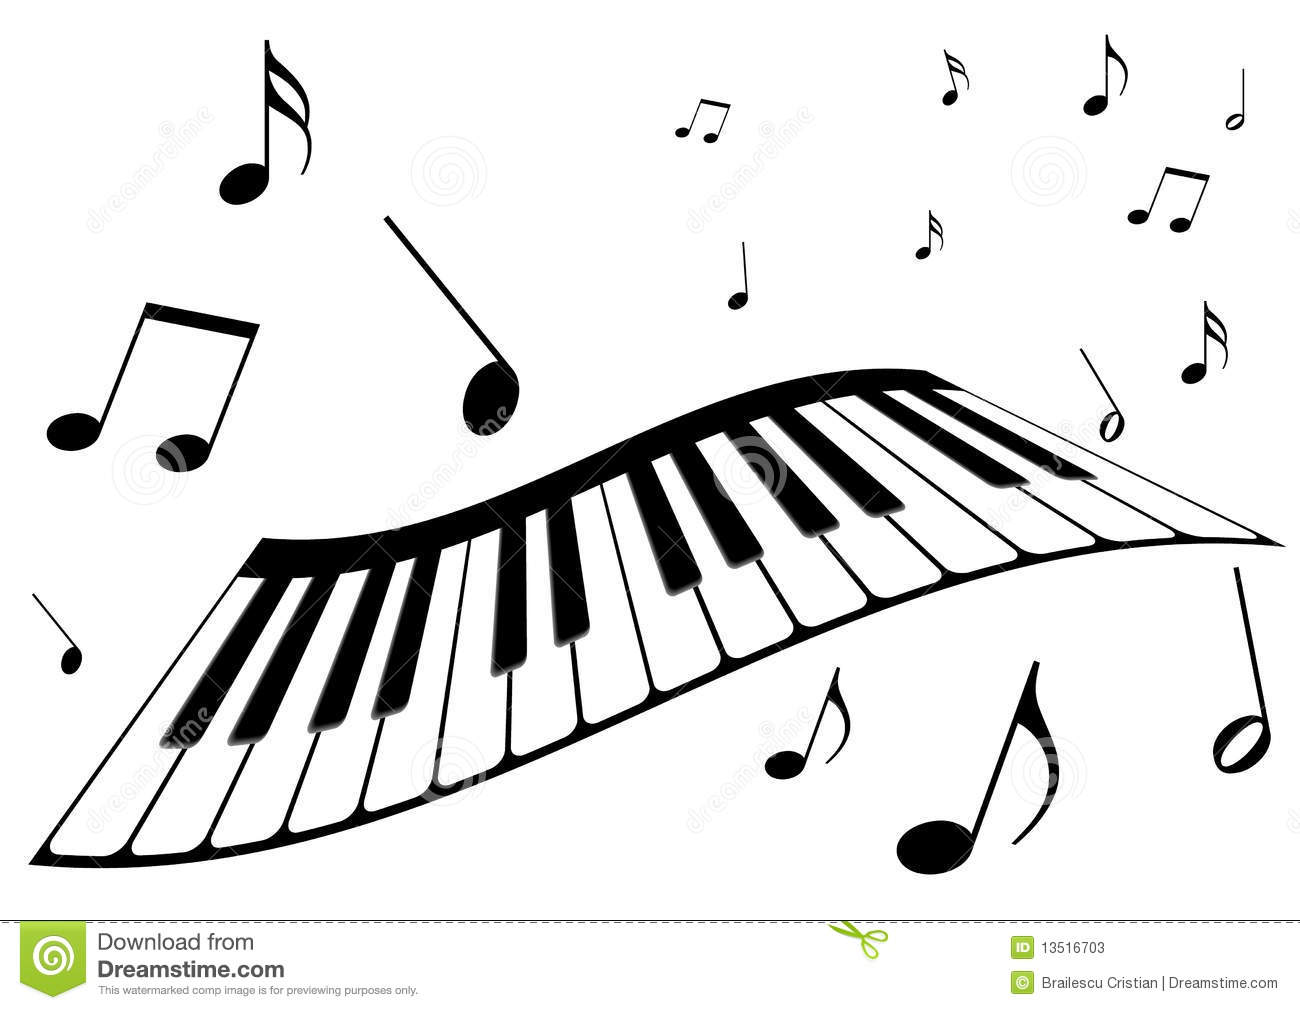 Piano Notes Clipart Images For Gt Piano Notes Clip